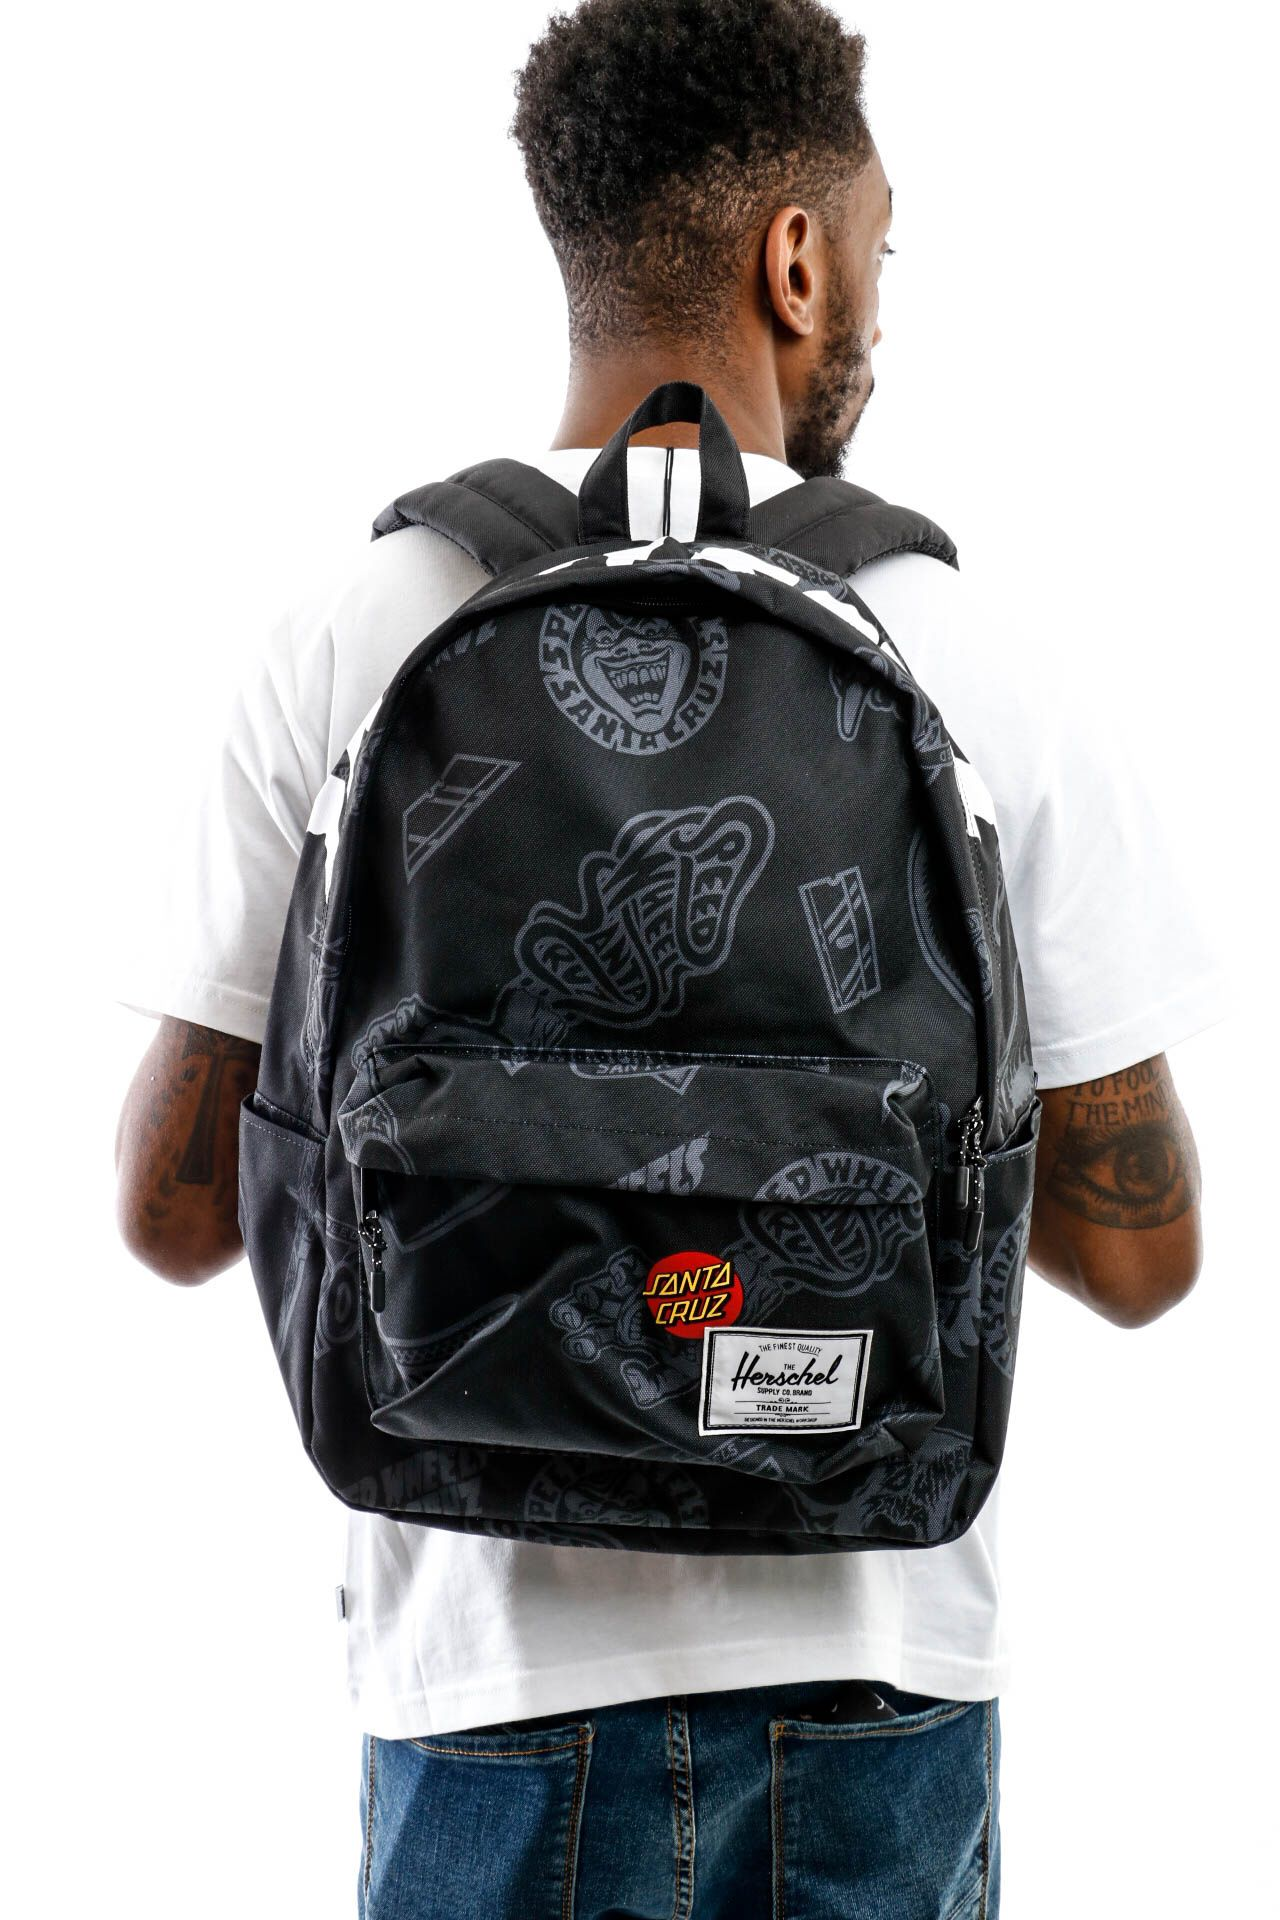 Afbeelding van Herschel Supply Rugtas Santa Cruz | Classic X-Large Speed Wheels Black 10492-04108